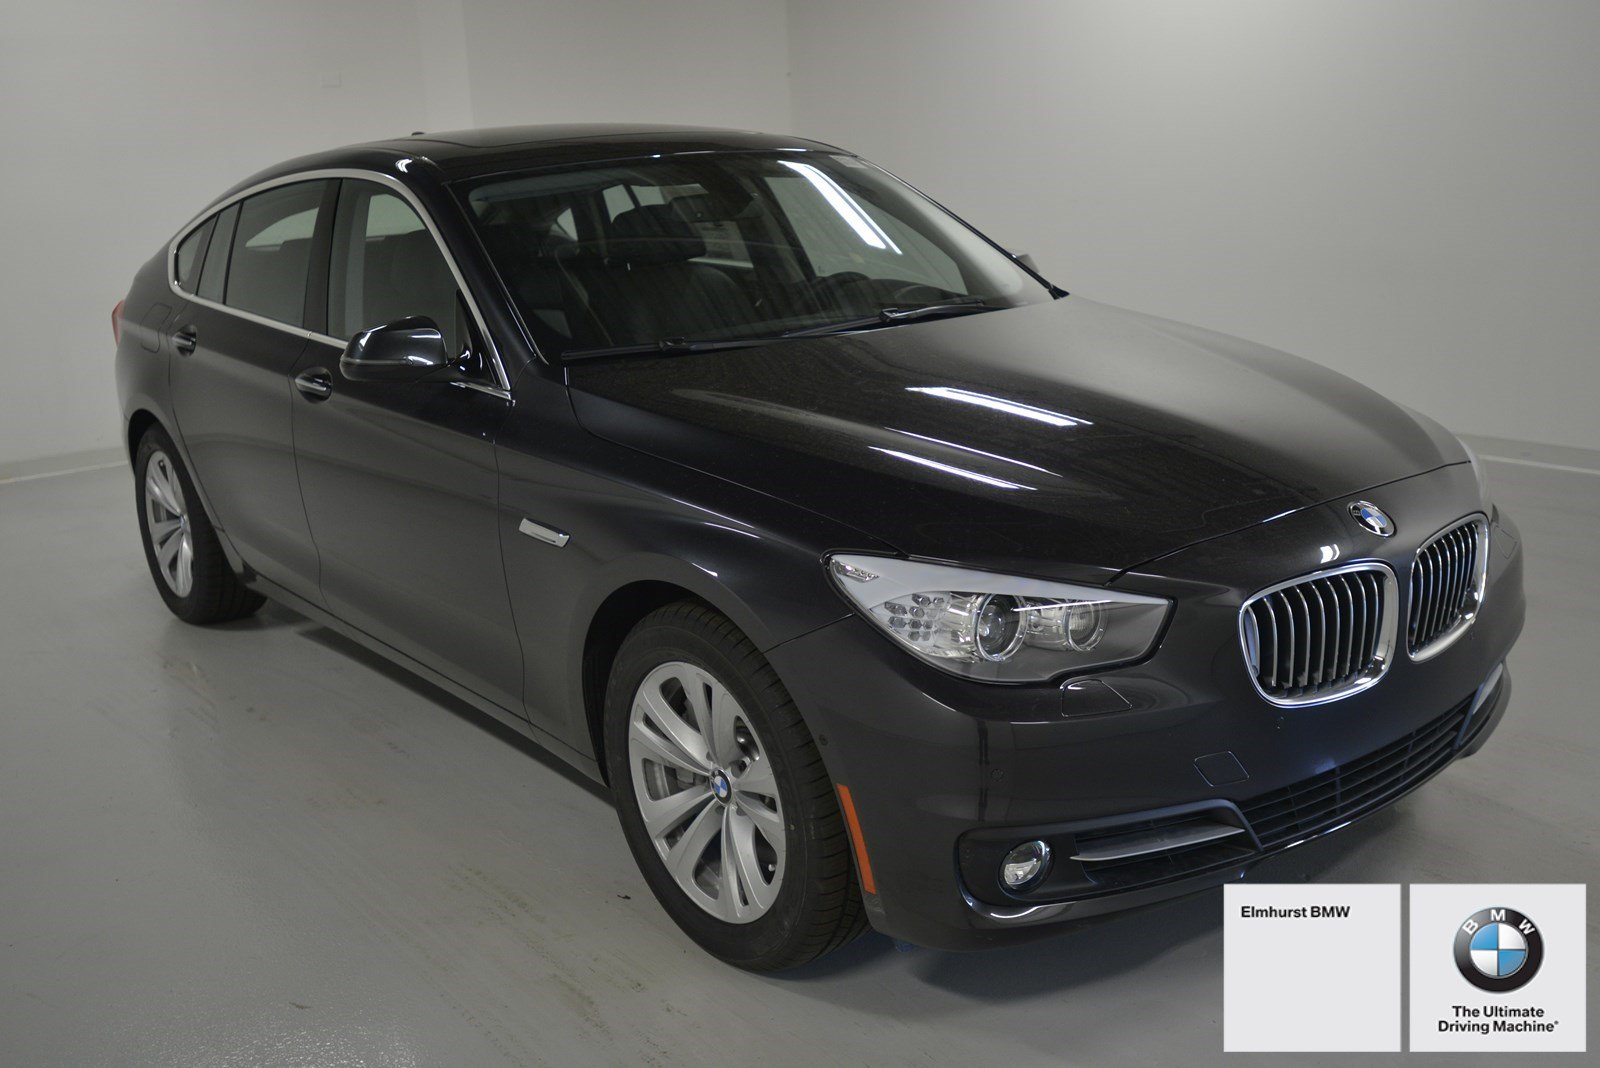 pre owned 2017 bmw 5 series 535i xdrive gran turismo hatchback in elmhurst b7633 elmhurst bmw. Black Bedroom Furniture Sets. Home Design Ideas